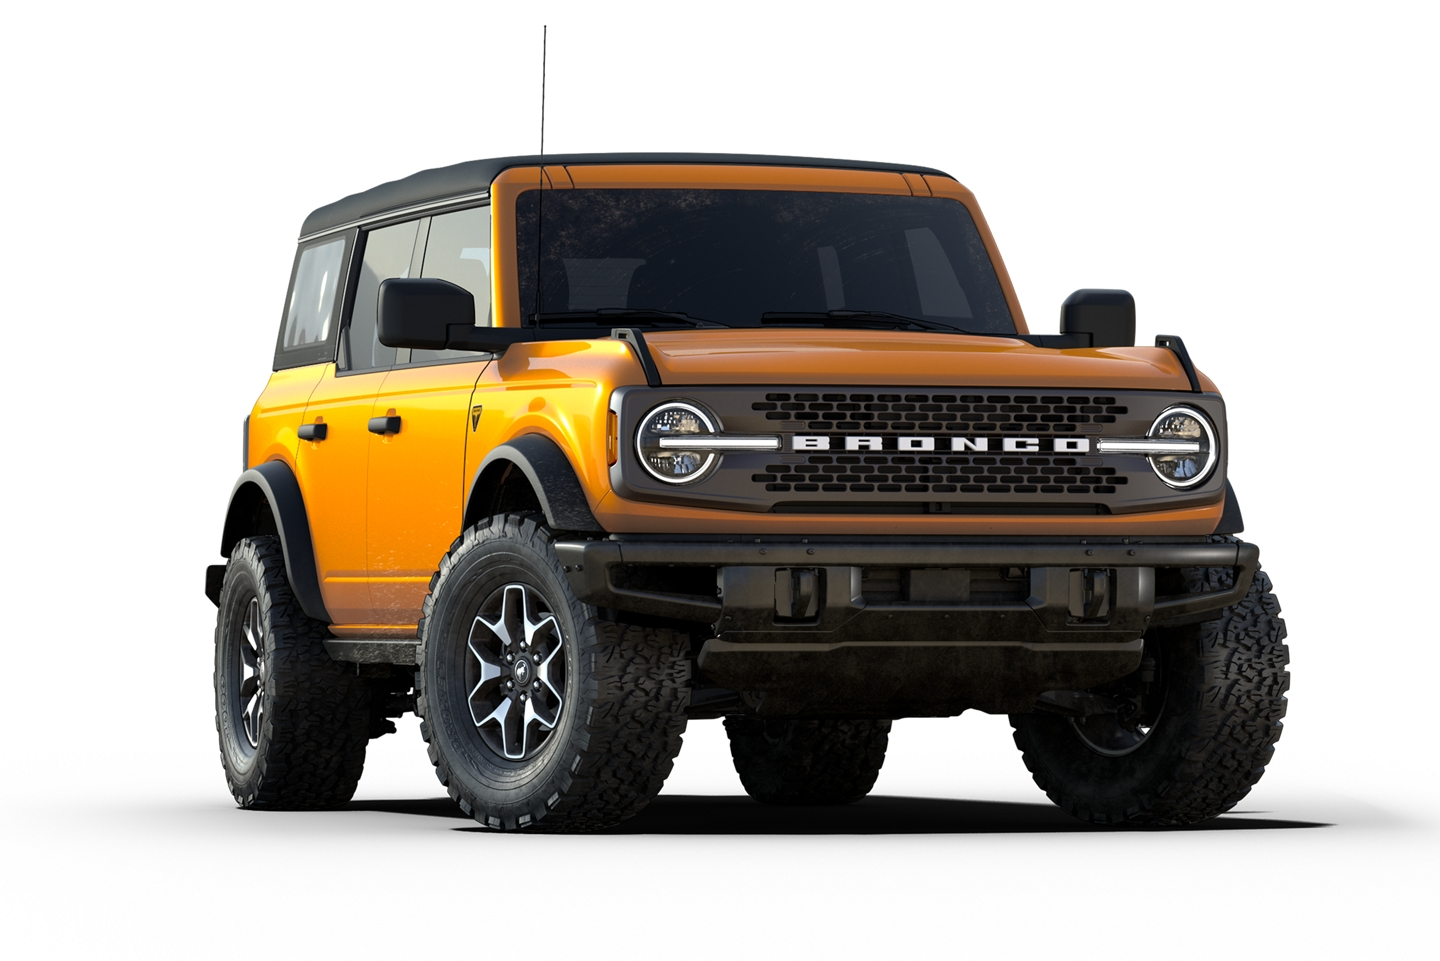 2021 Ford Bronco Badlands model